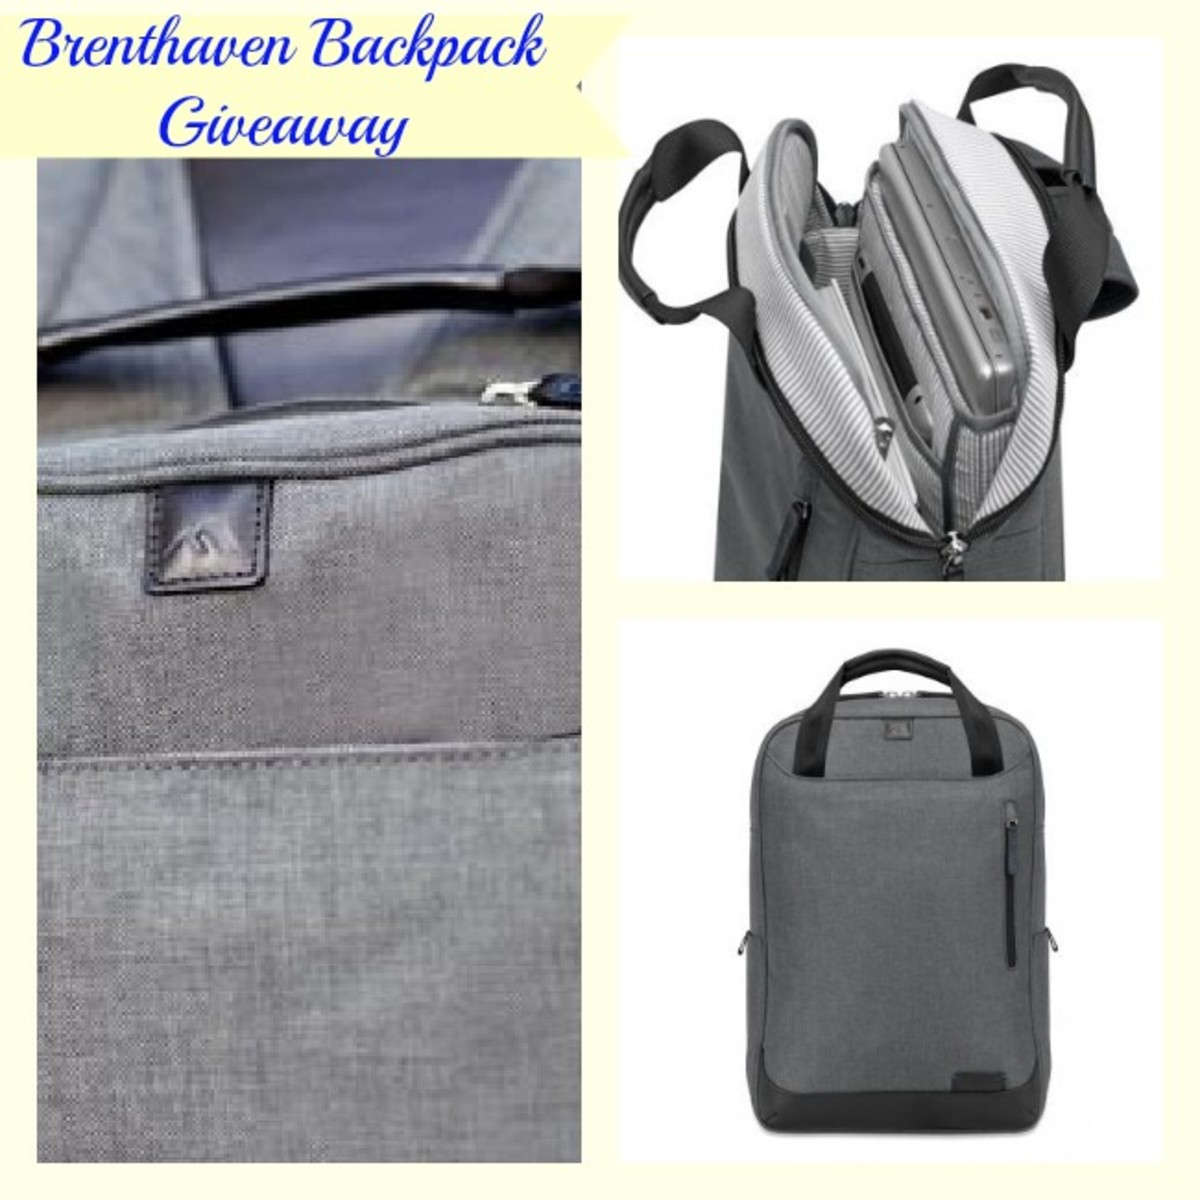 Brenthaven_giveaway